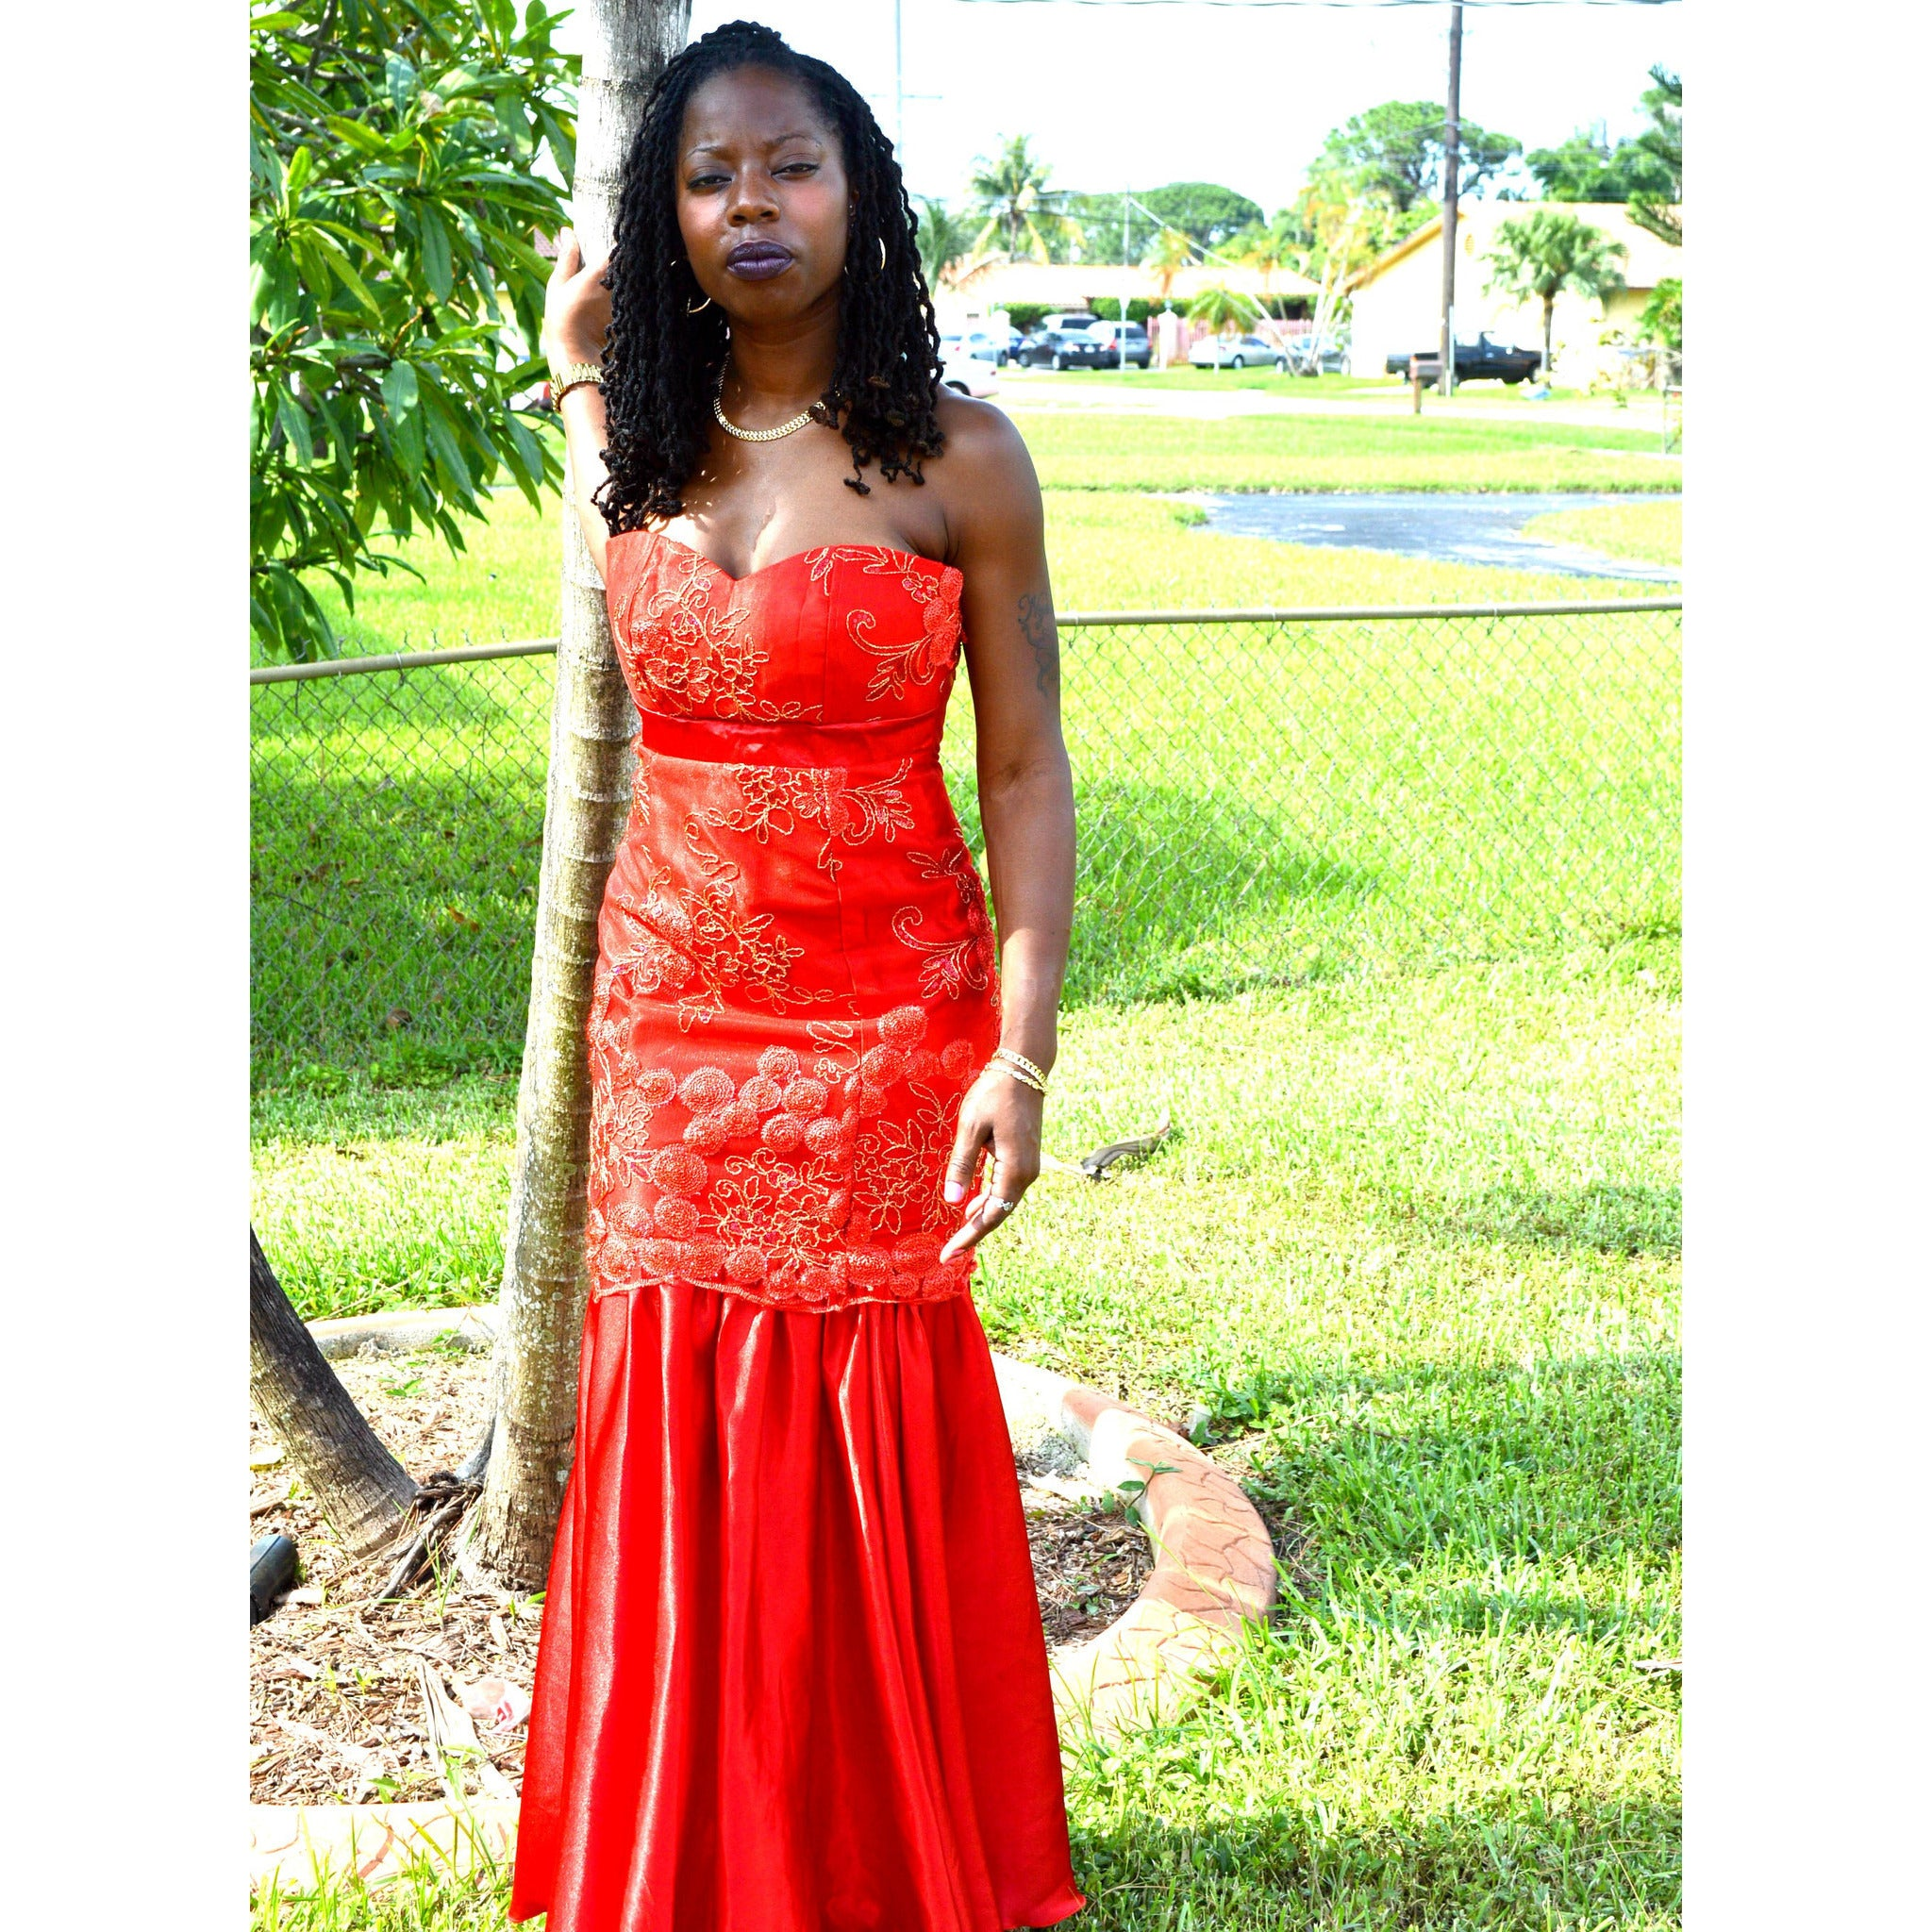 FIERY RED STRAPLESS LACE EVENING GOWN - Zabba Designs African ...